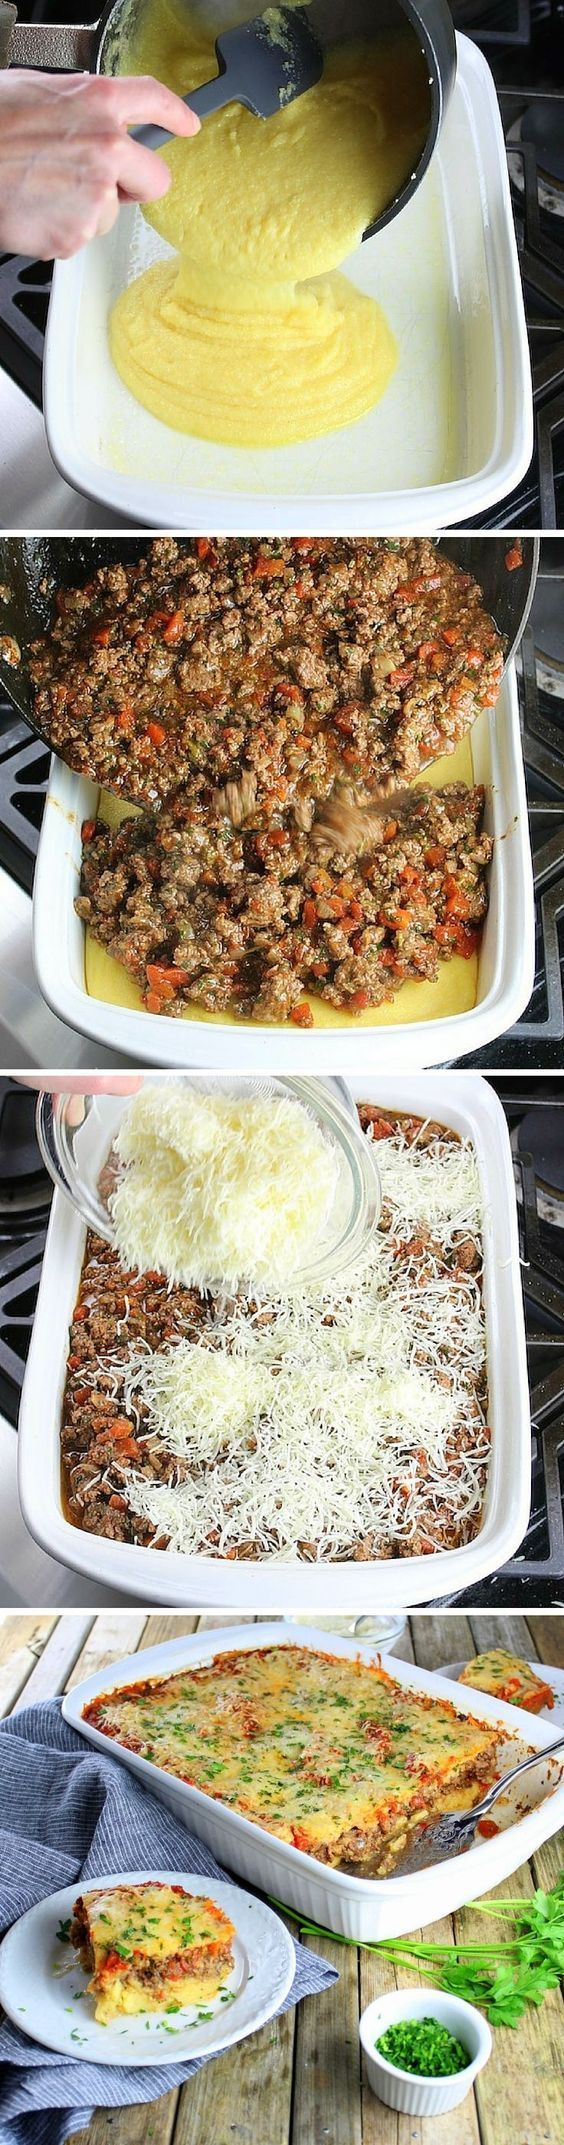 Lamb Lasagna With Parmesan Polenta.  Ground lamb, tomatoes, garlic, & onion... Polenta replaces the #lasagna noodles, making it easy, gluten-free, & delicious!  http://tasteandsee.com